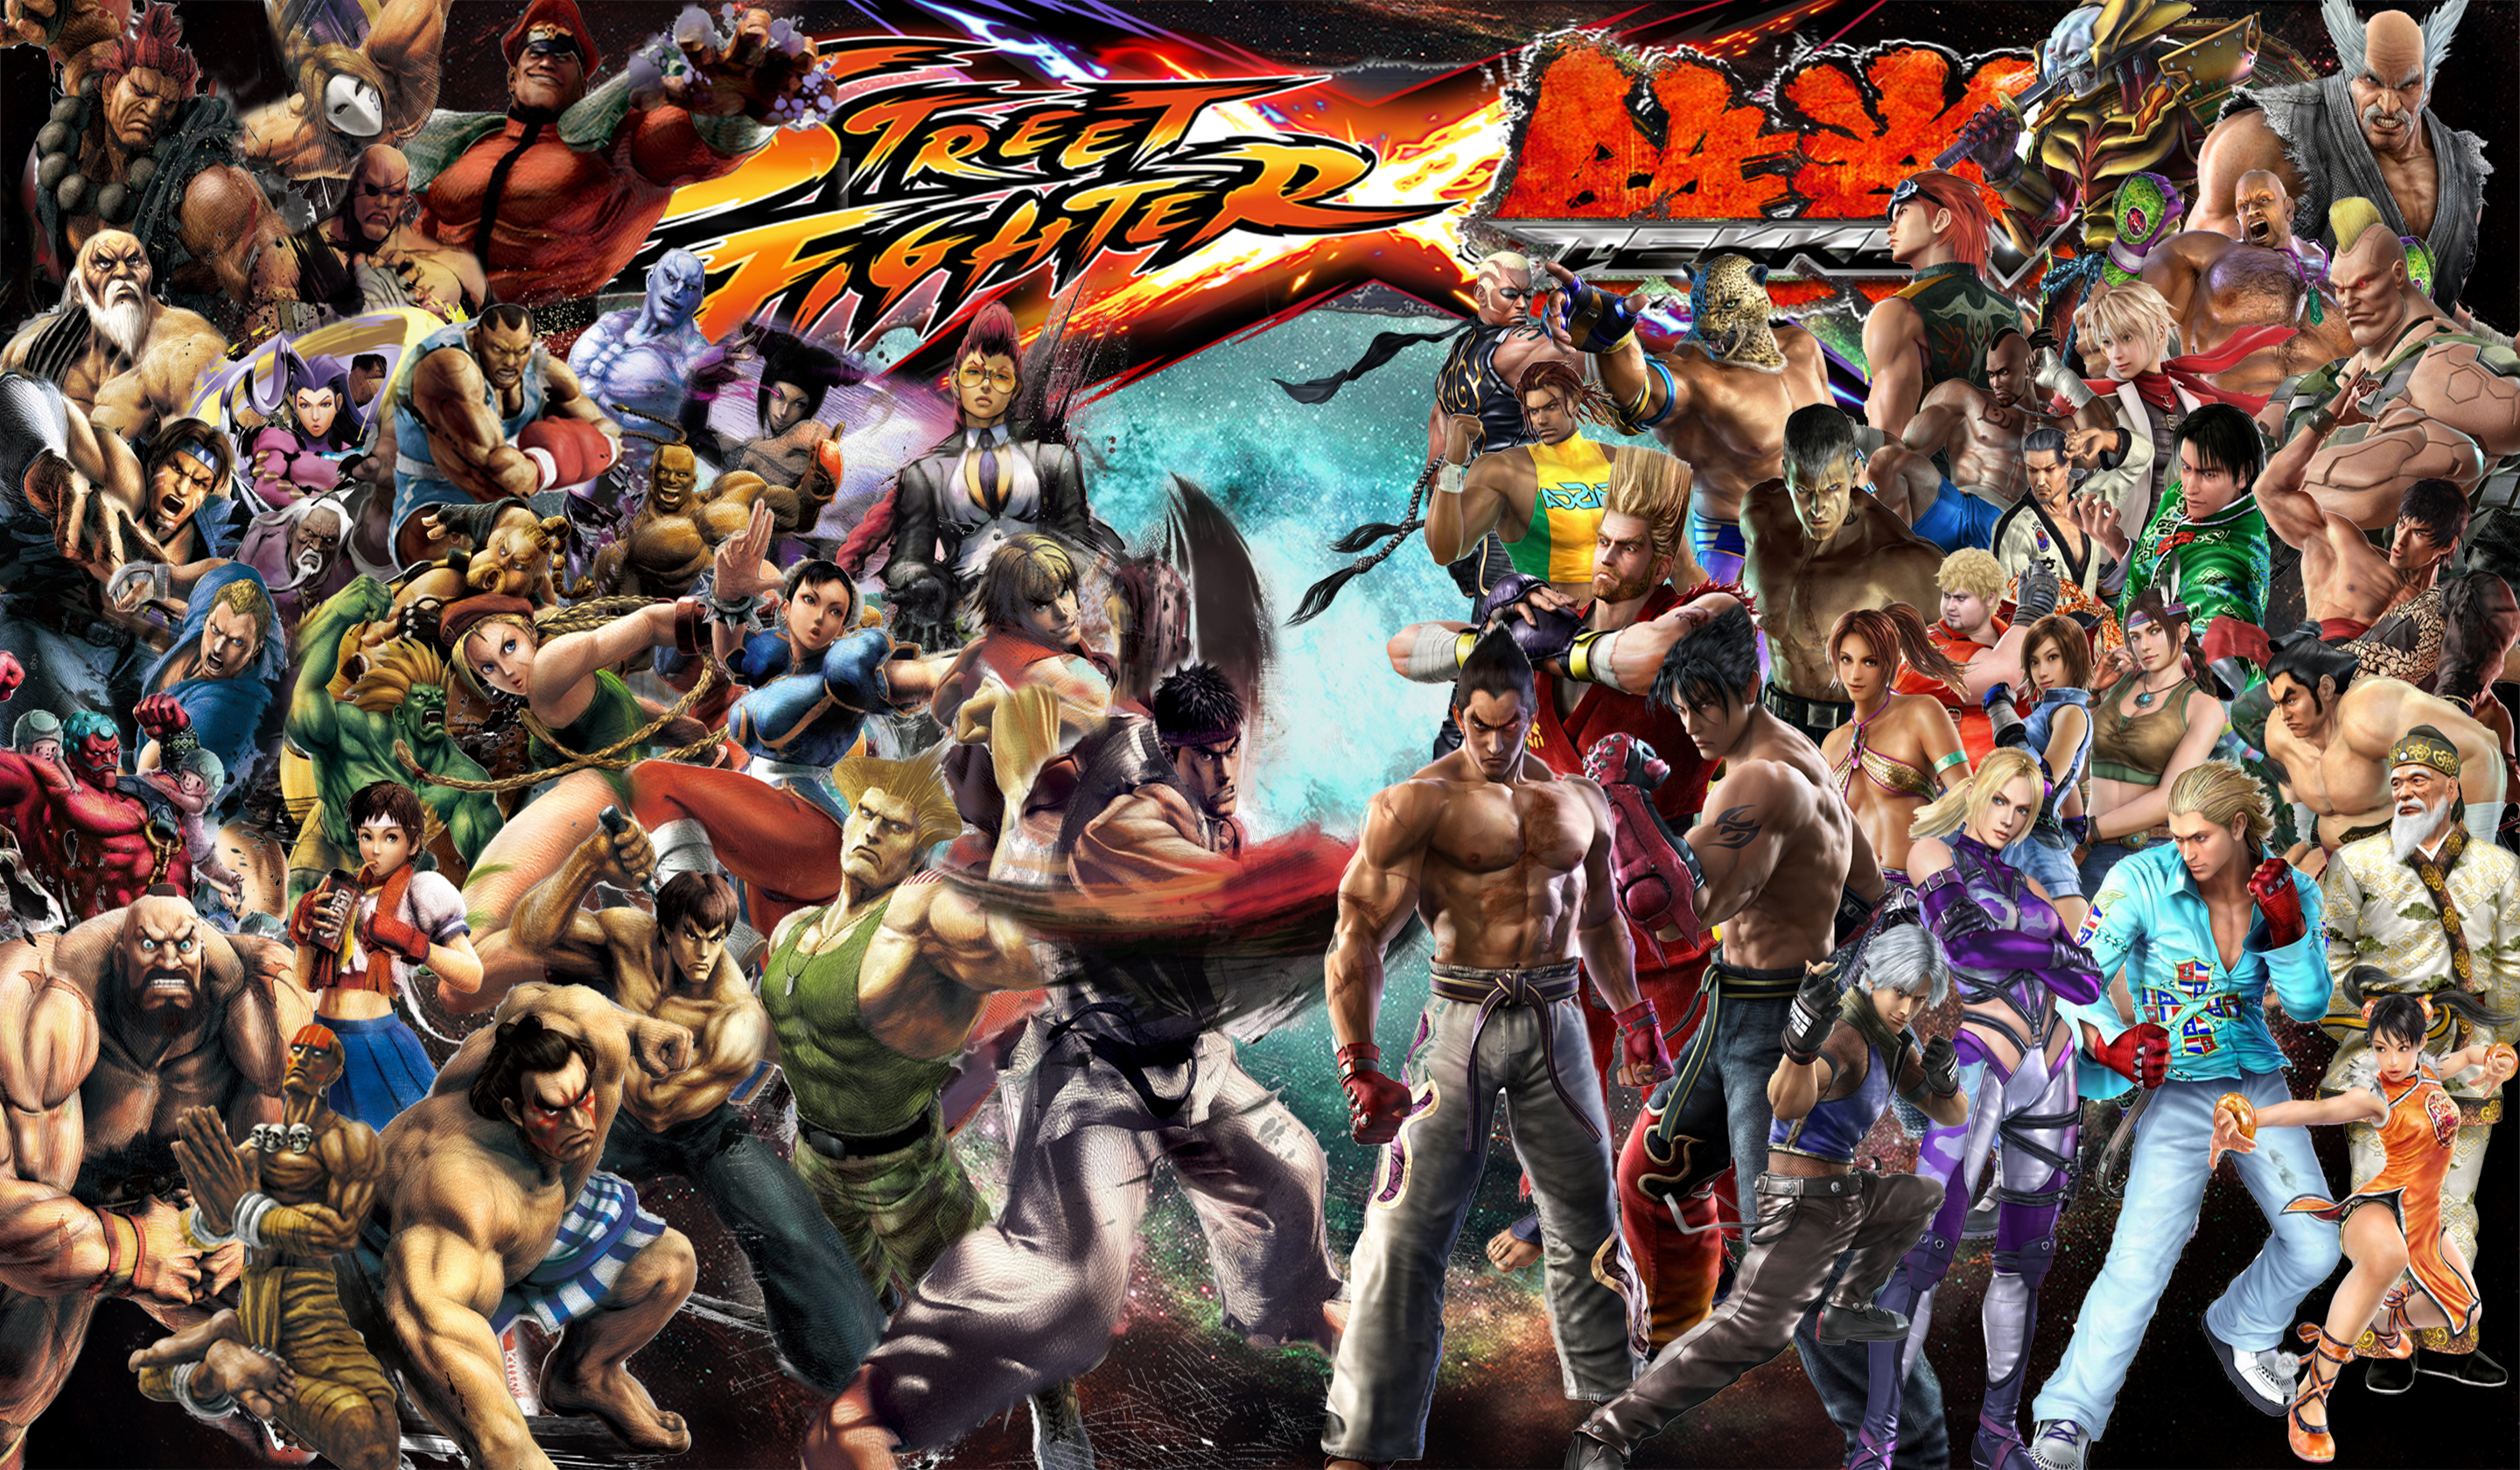 Most Viewed Street Fighter X Tekken Wallpapers 4k Wallpapers